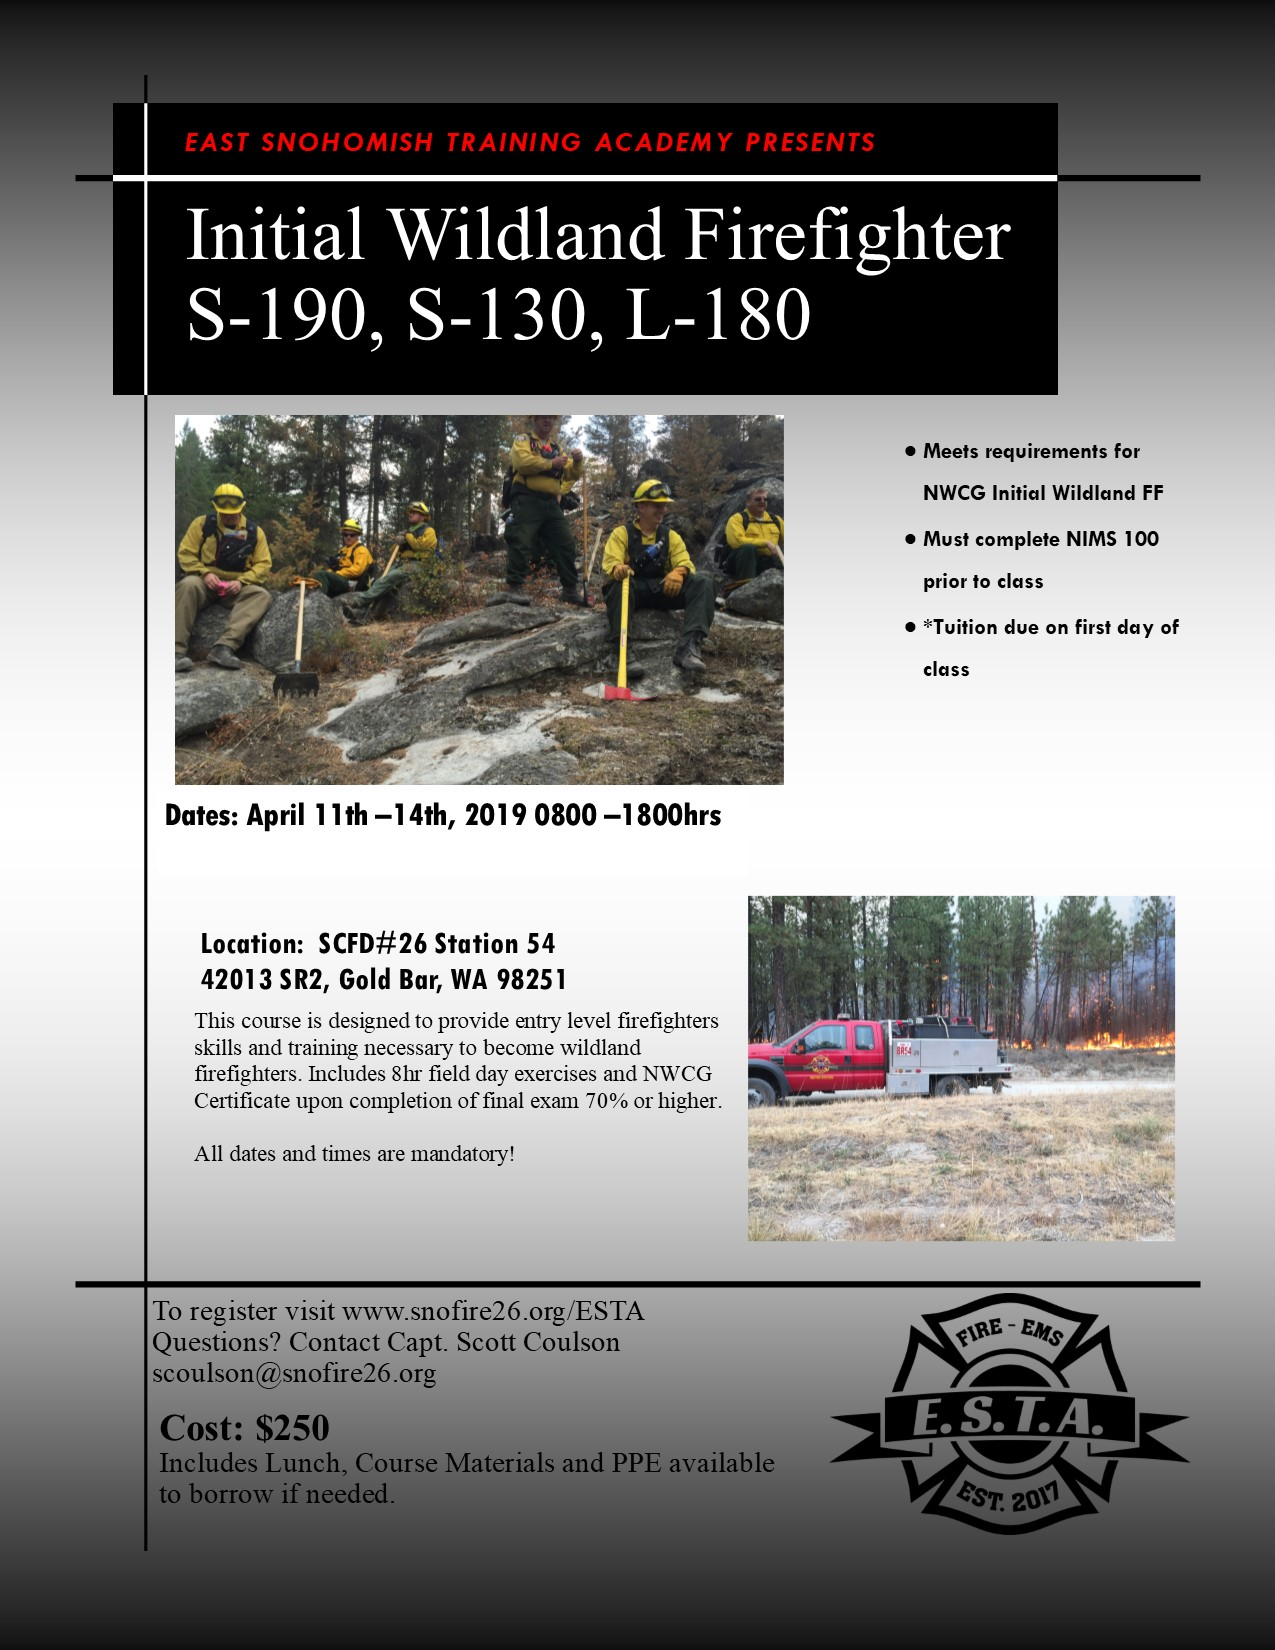 Initial Wildland Firefighter — Snohomish County Fire District 26